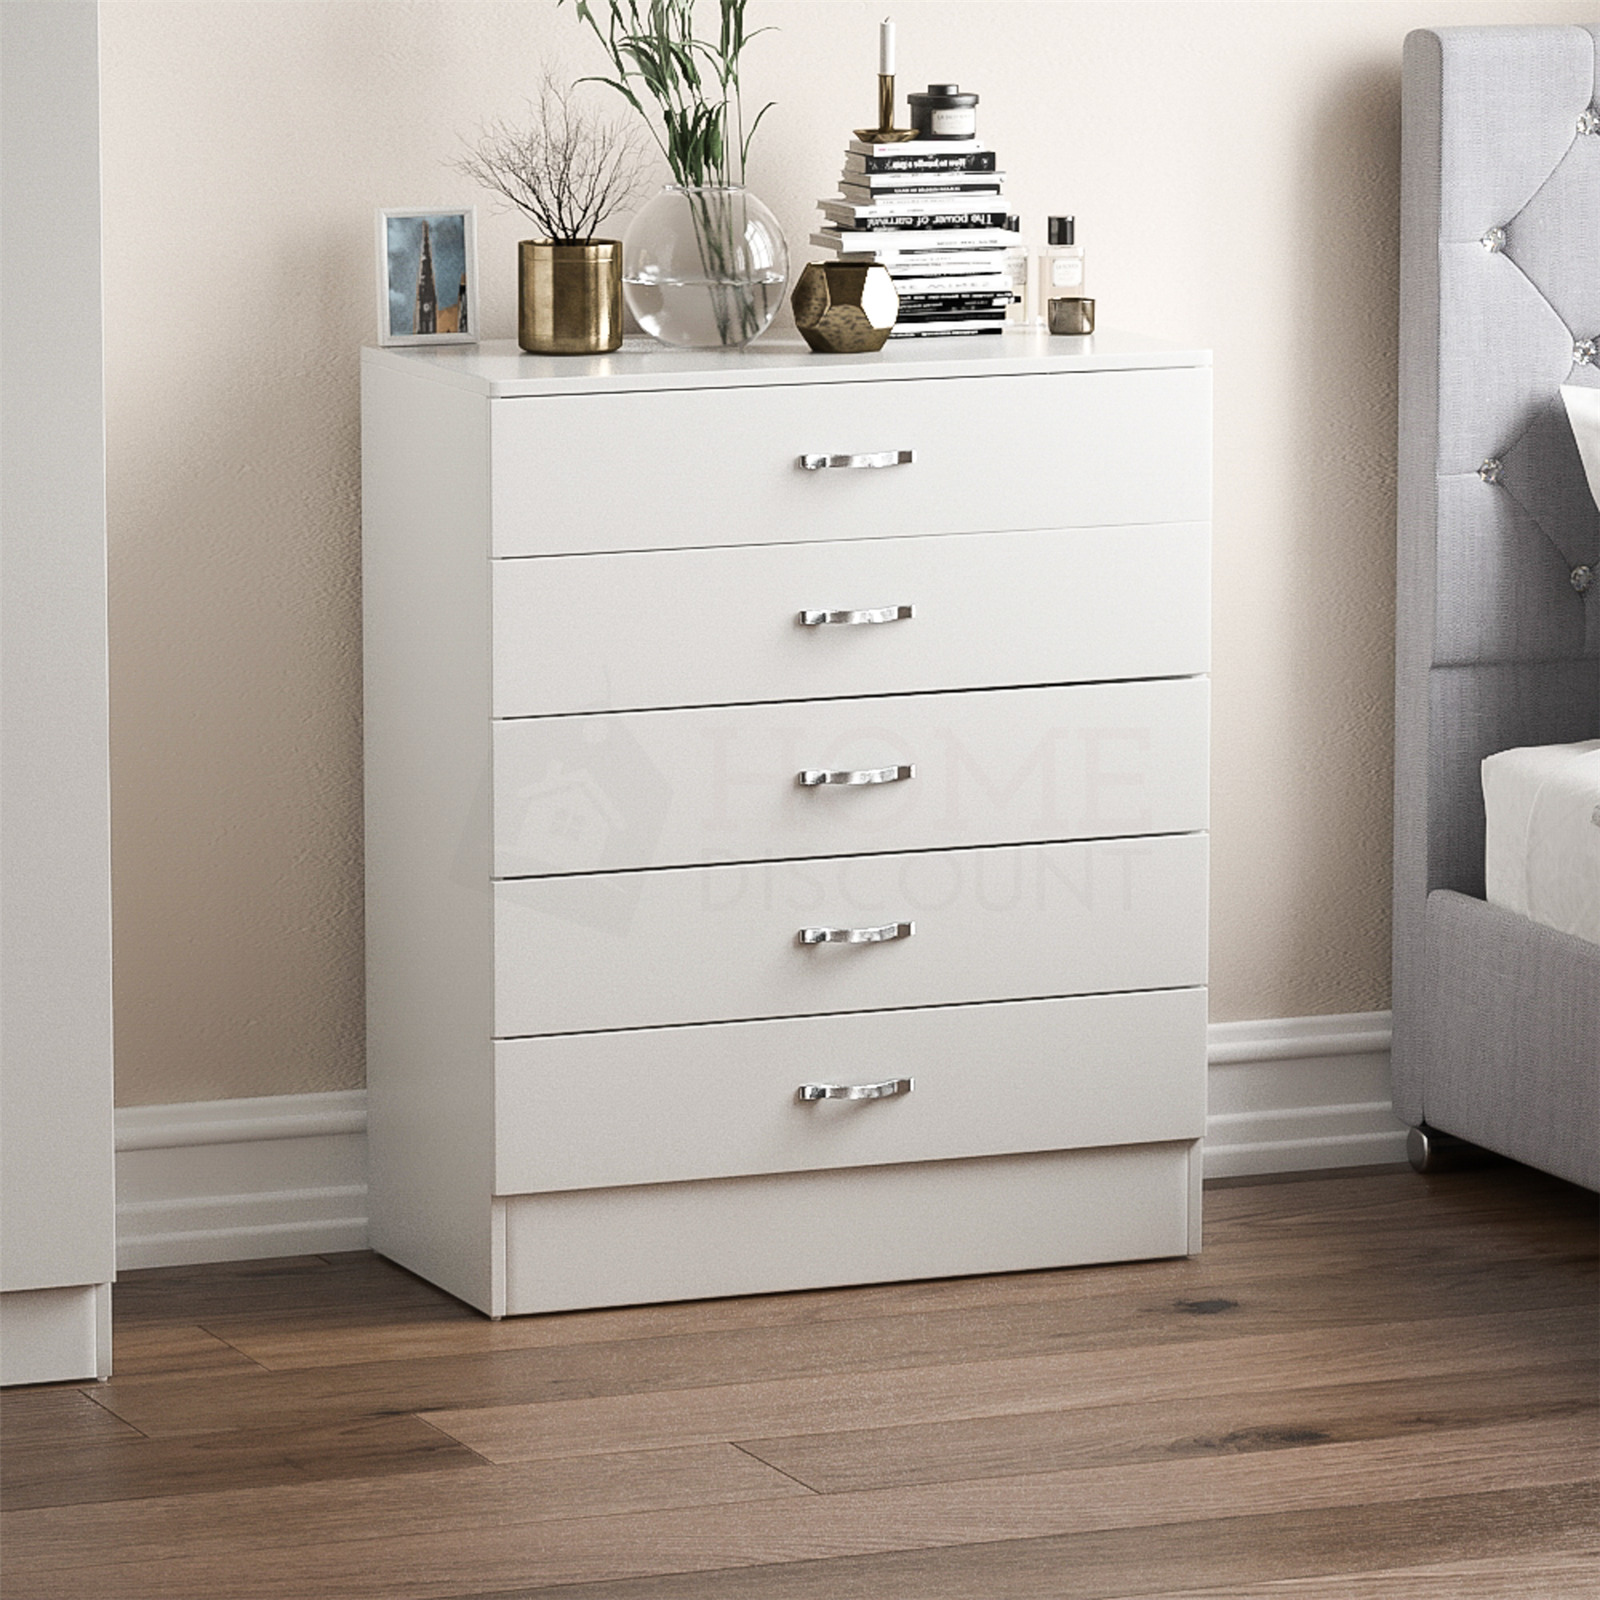 Riano chest of drawers white 5 drawer metal handles runners bedroom furniture eur 57 12 for White bedroom chest of drawers